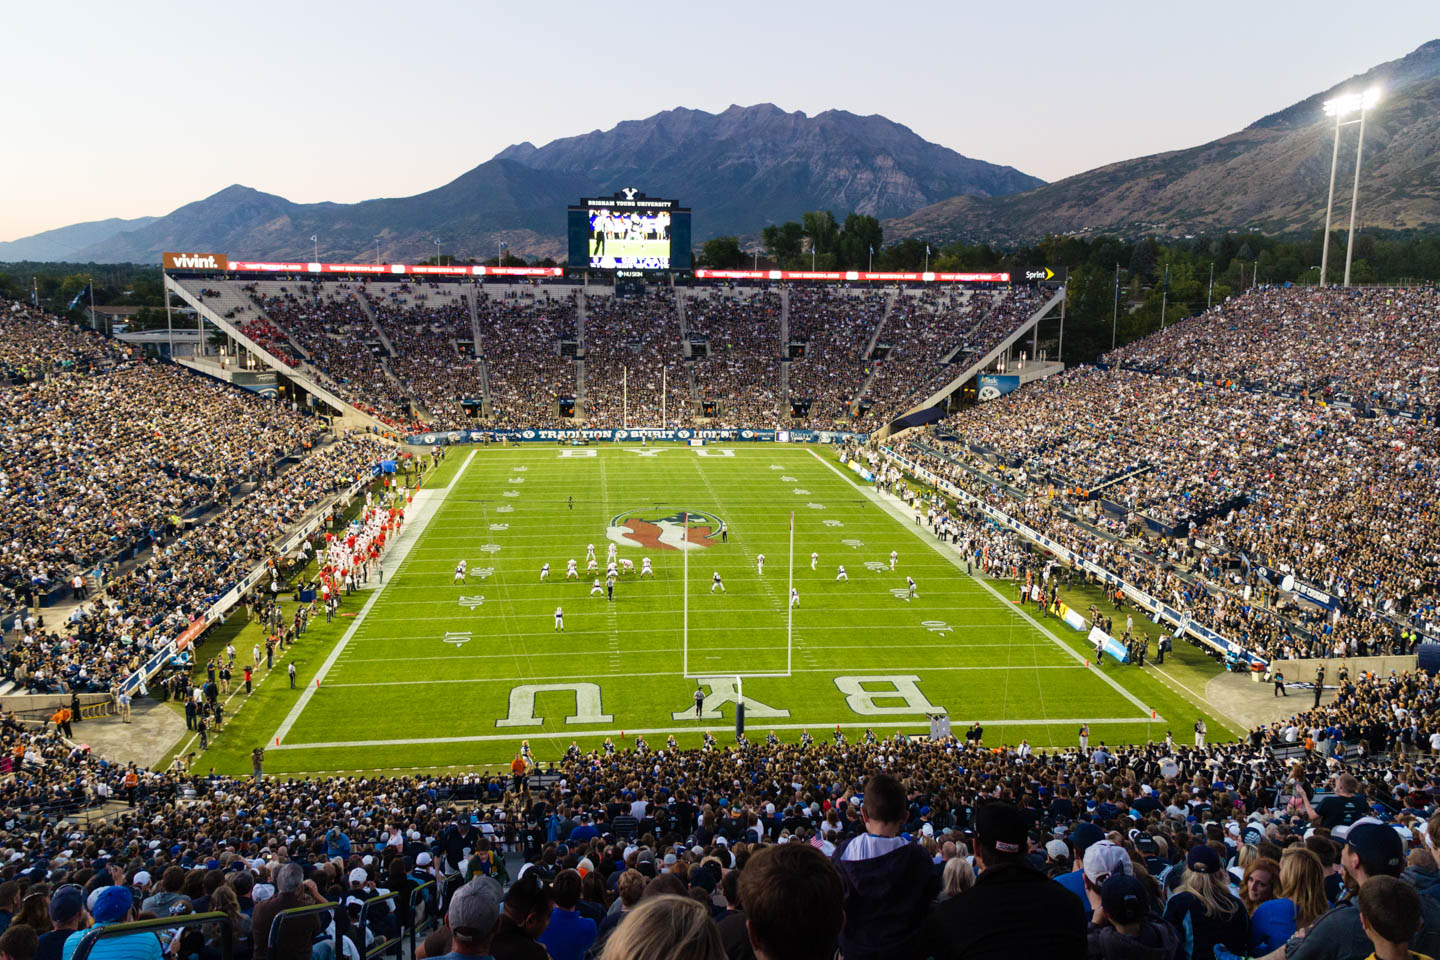 Dusk settles over BYU's Lavell Edwards Stadium